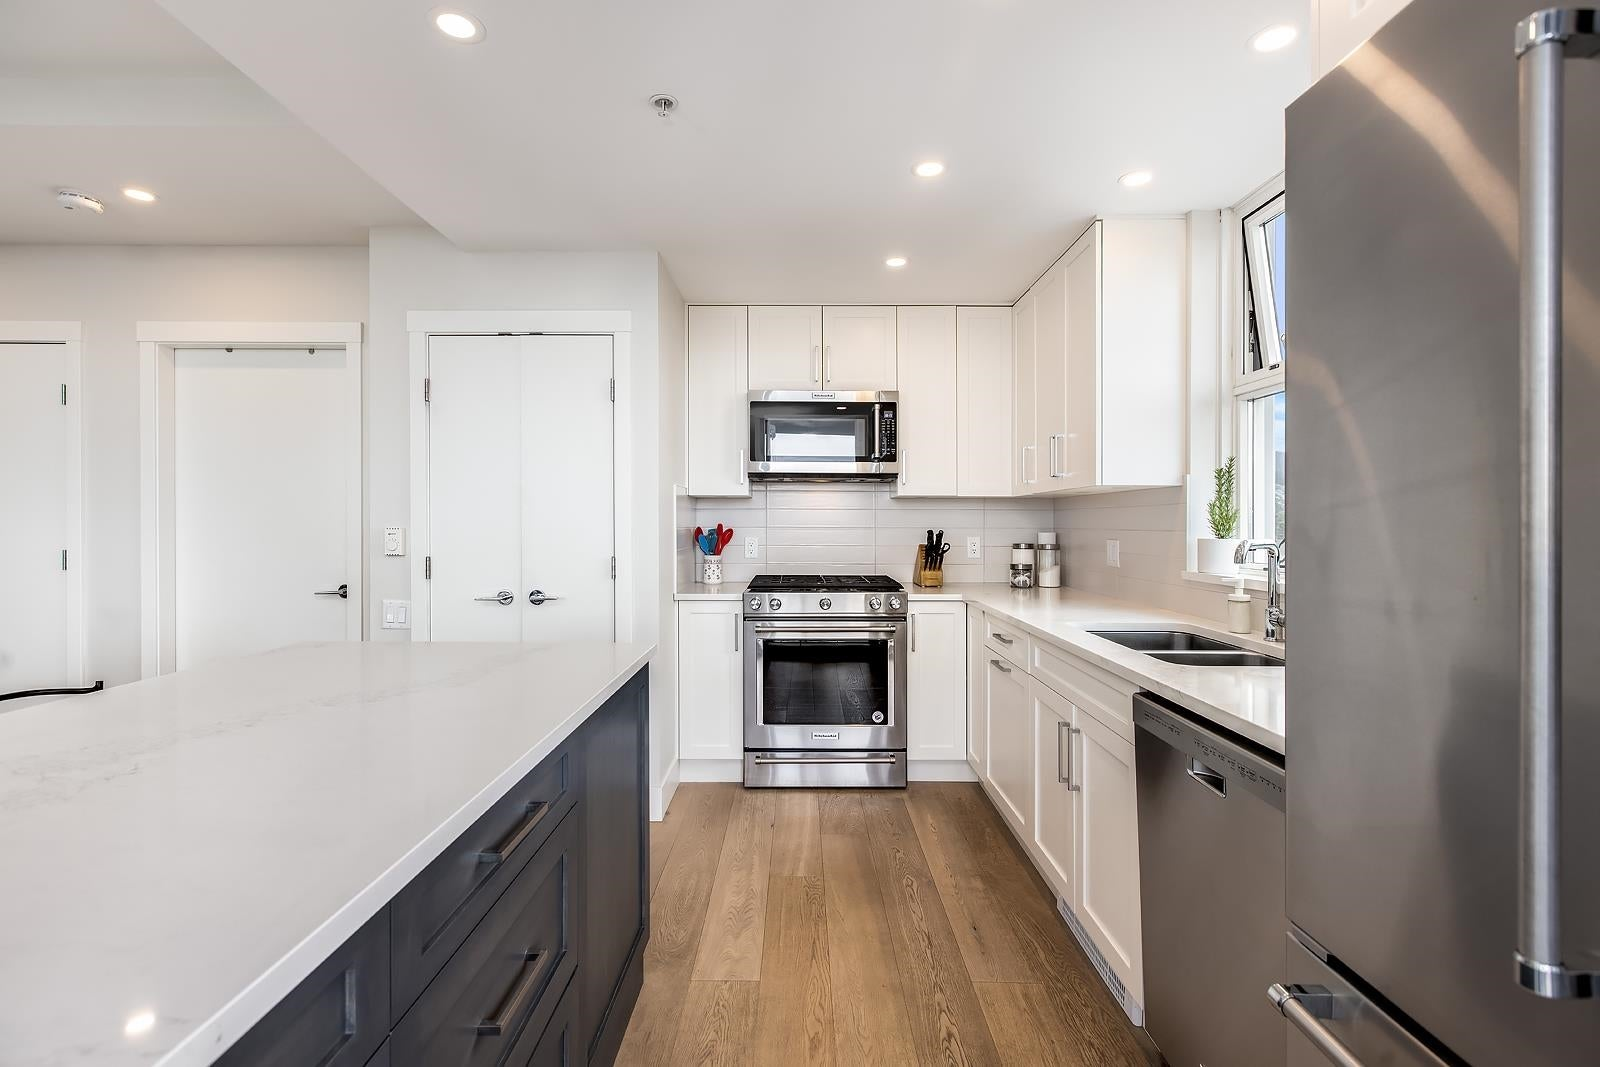 1601 121 W 16TH STREET - Central Lonsdale Apartment/Condo for sale, 2 Bedrooms (R2617103) - #16